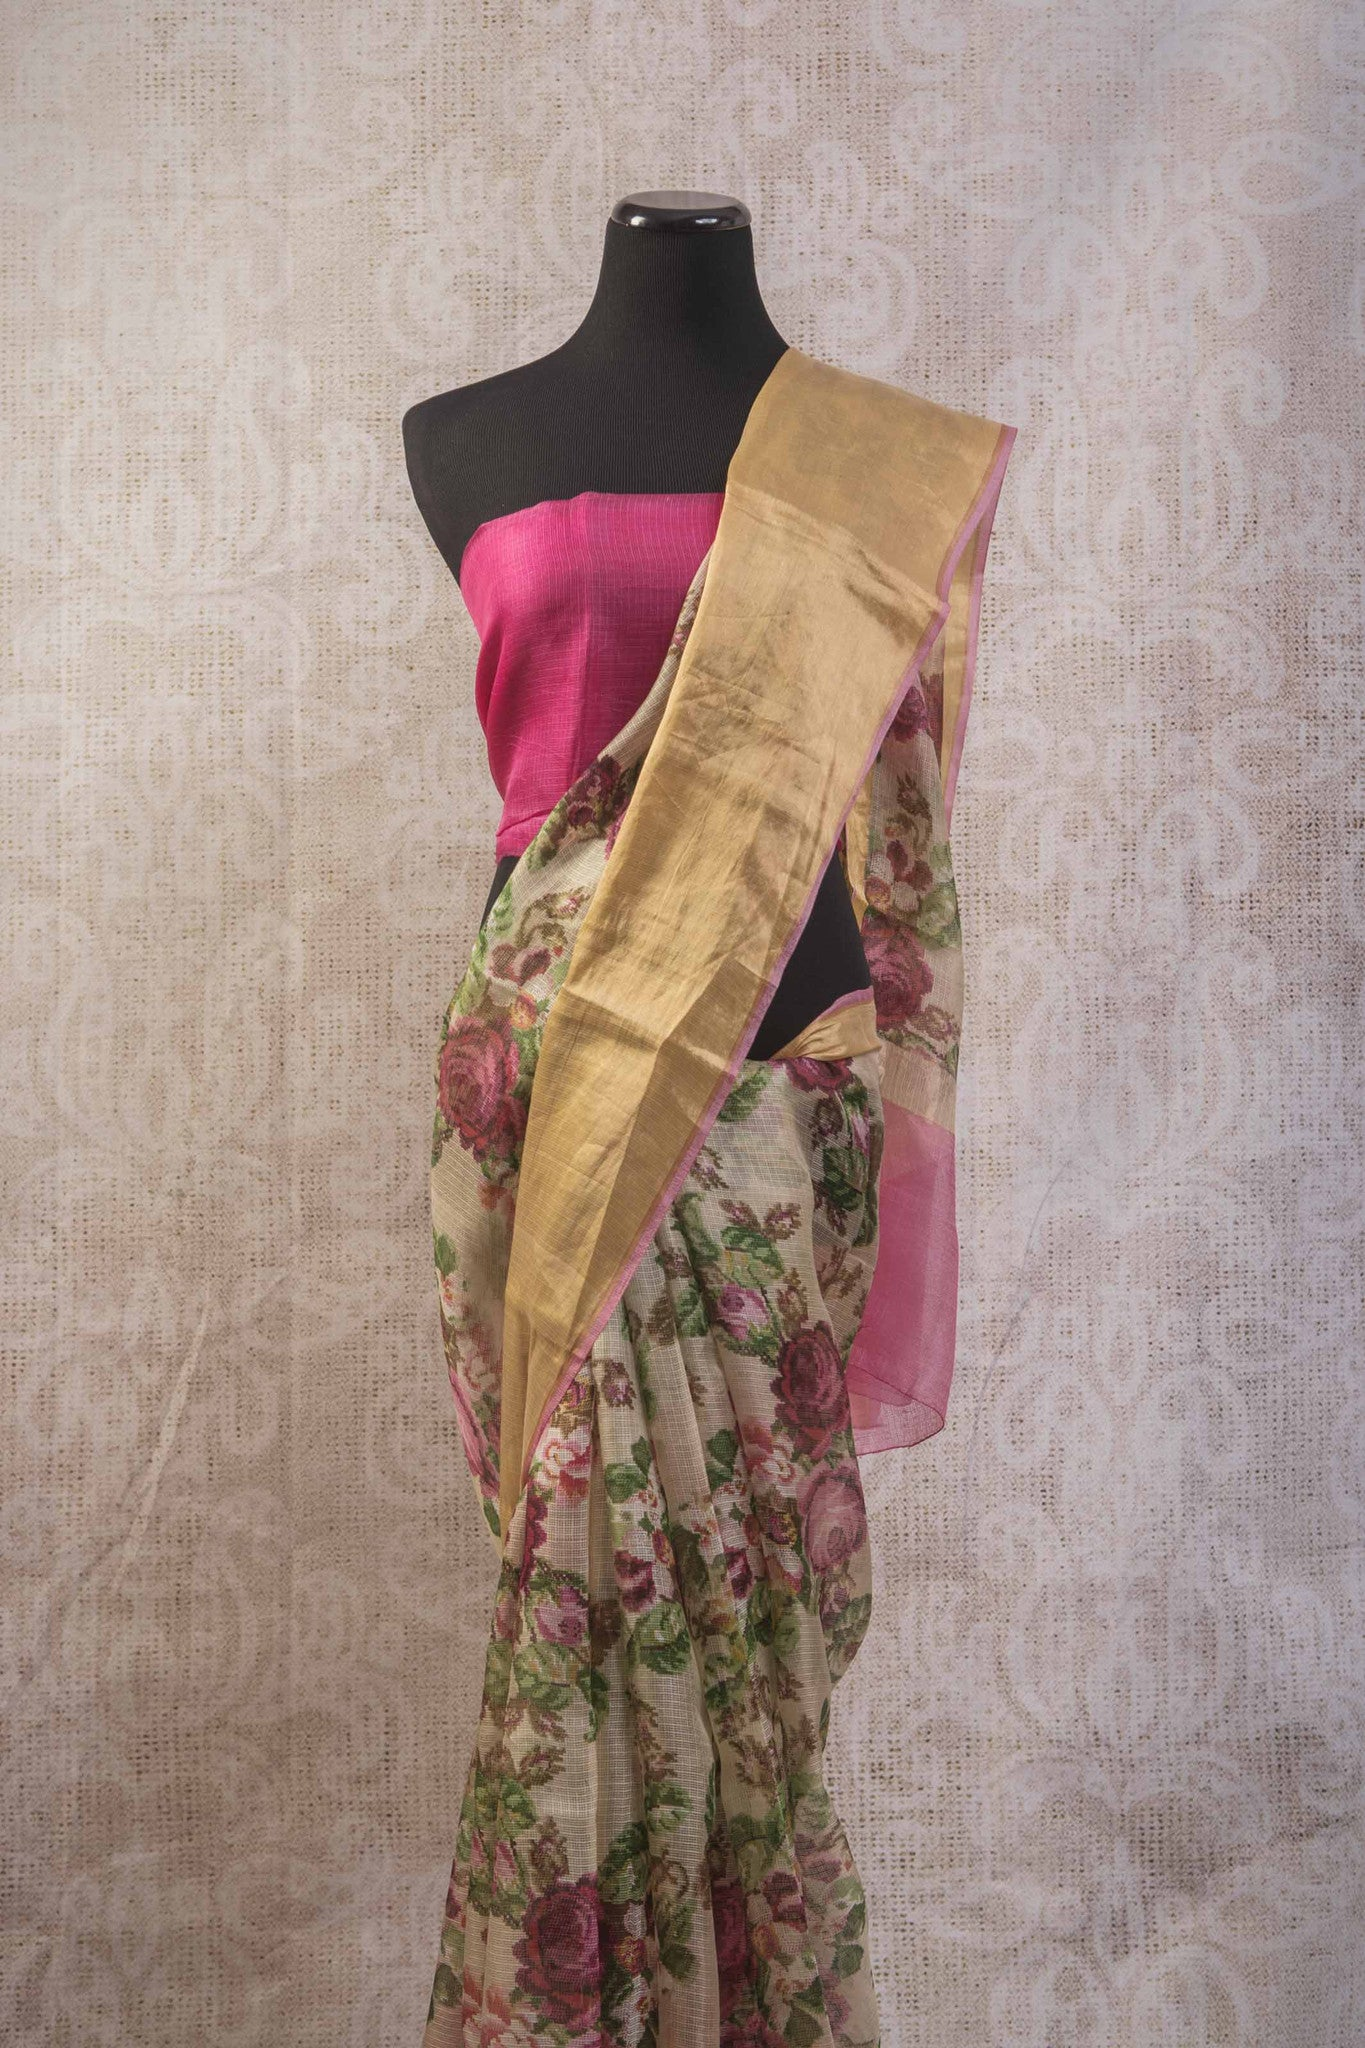 90b745 - Printed floral saree online at Pure Elegance with gold trim border and an un-stiched pink blouse piece. This zari kota saree is a great choice for any occasion.